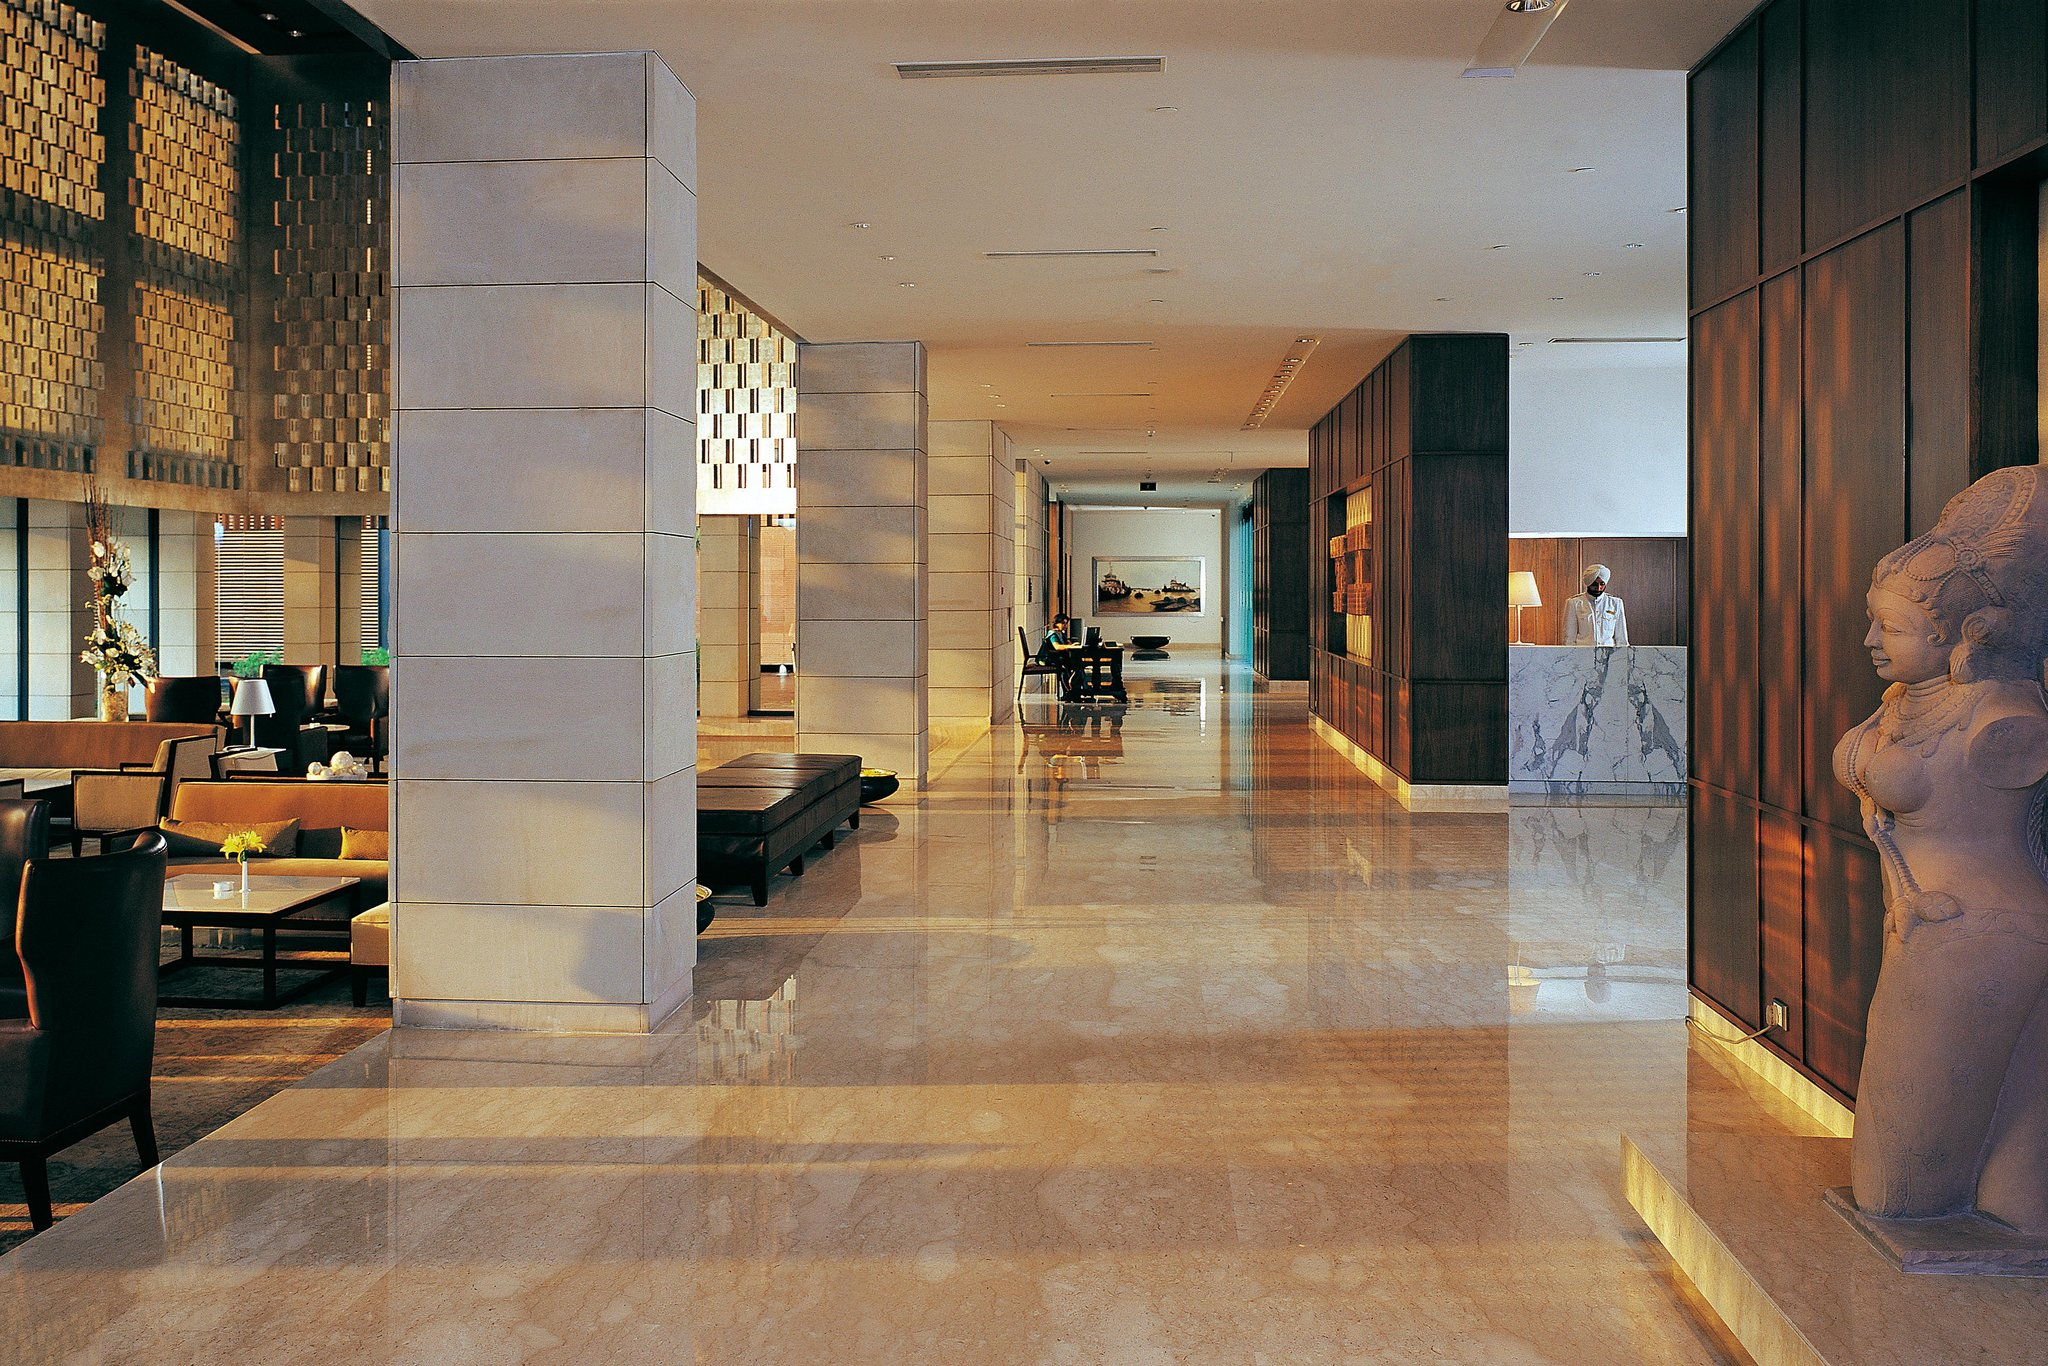 ITC Sonar, a Luxury Collection Hotel